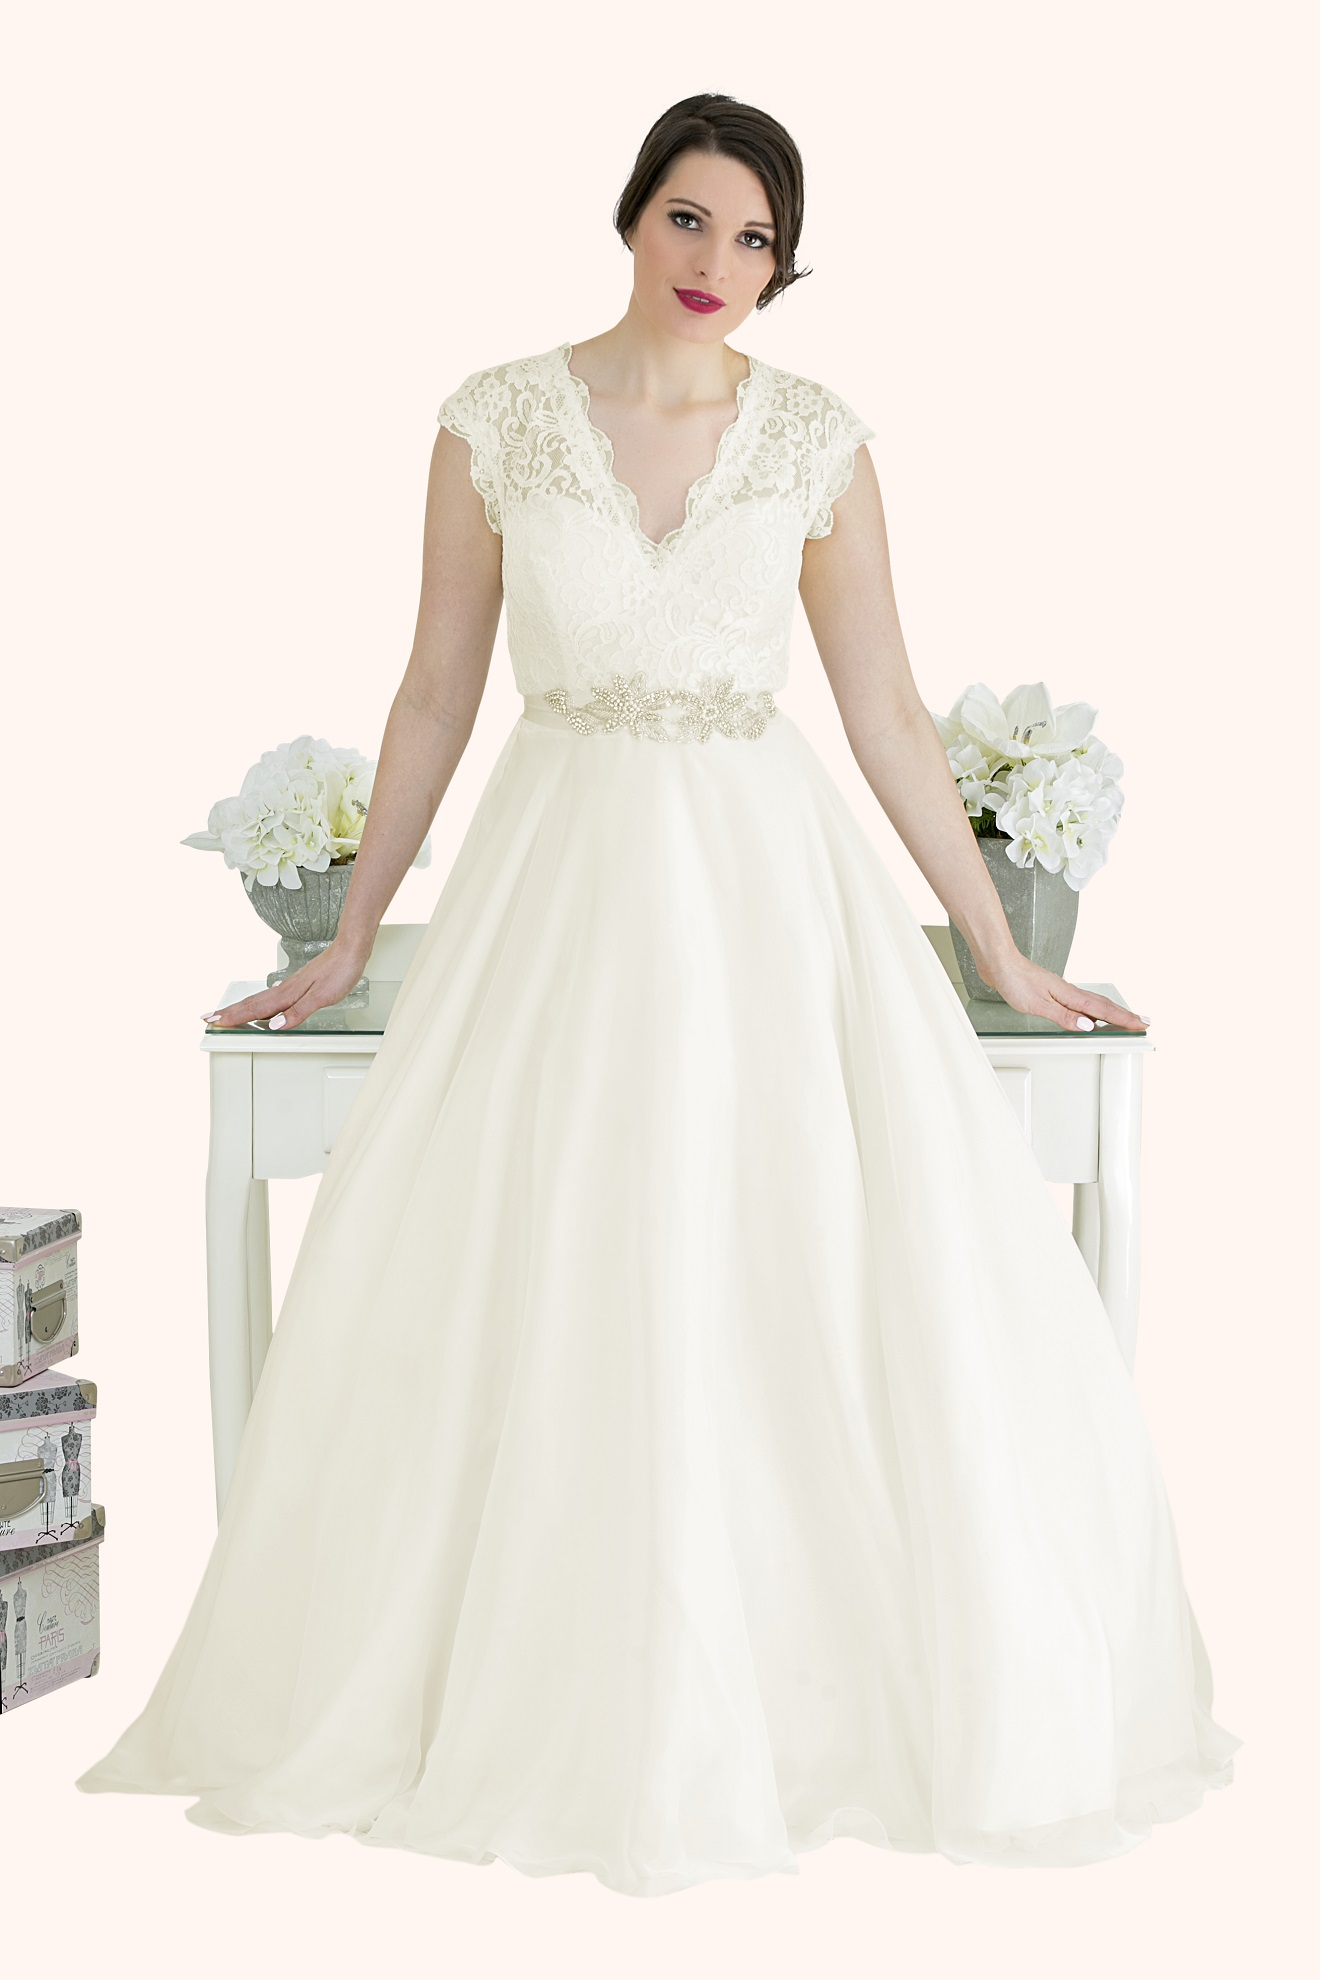 Catherine lace v neck cap sleeve wedding dress lace v neck cap sleeve wedding dress with a full soft silk feel chiffon ball gown ombrellifo Gallery